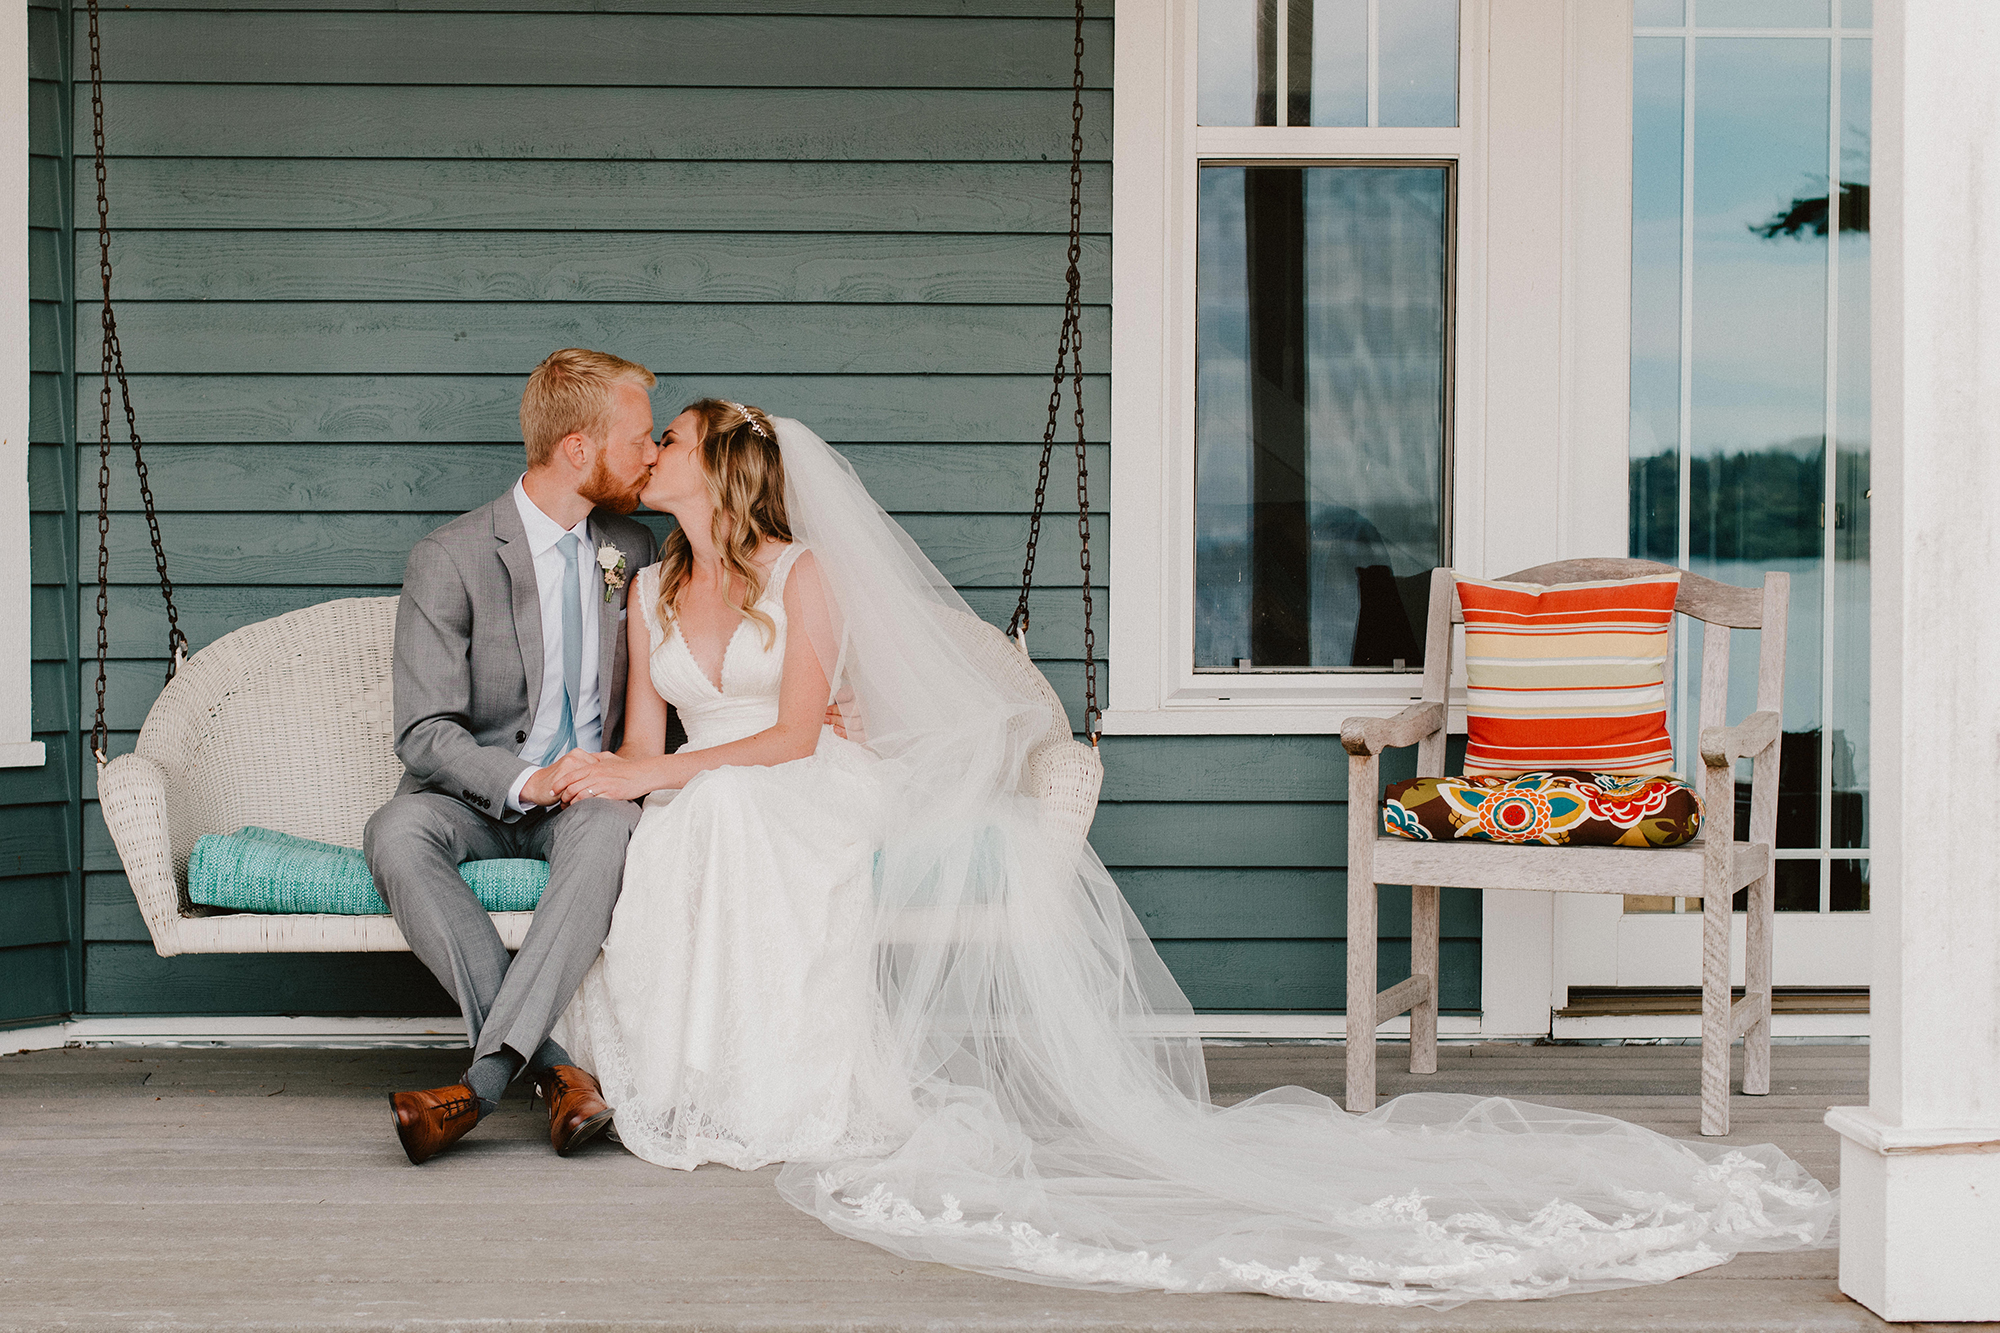 A Seattle Photographer - Weddings, Events, and Lifestyle